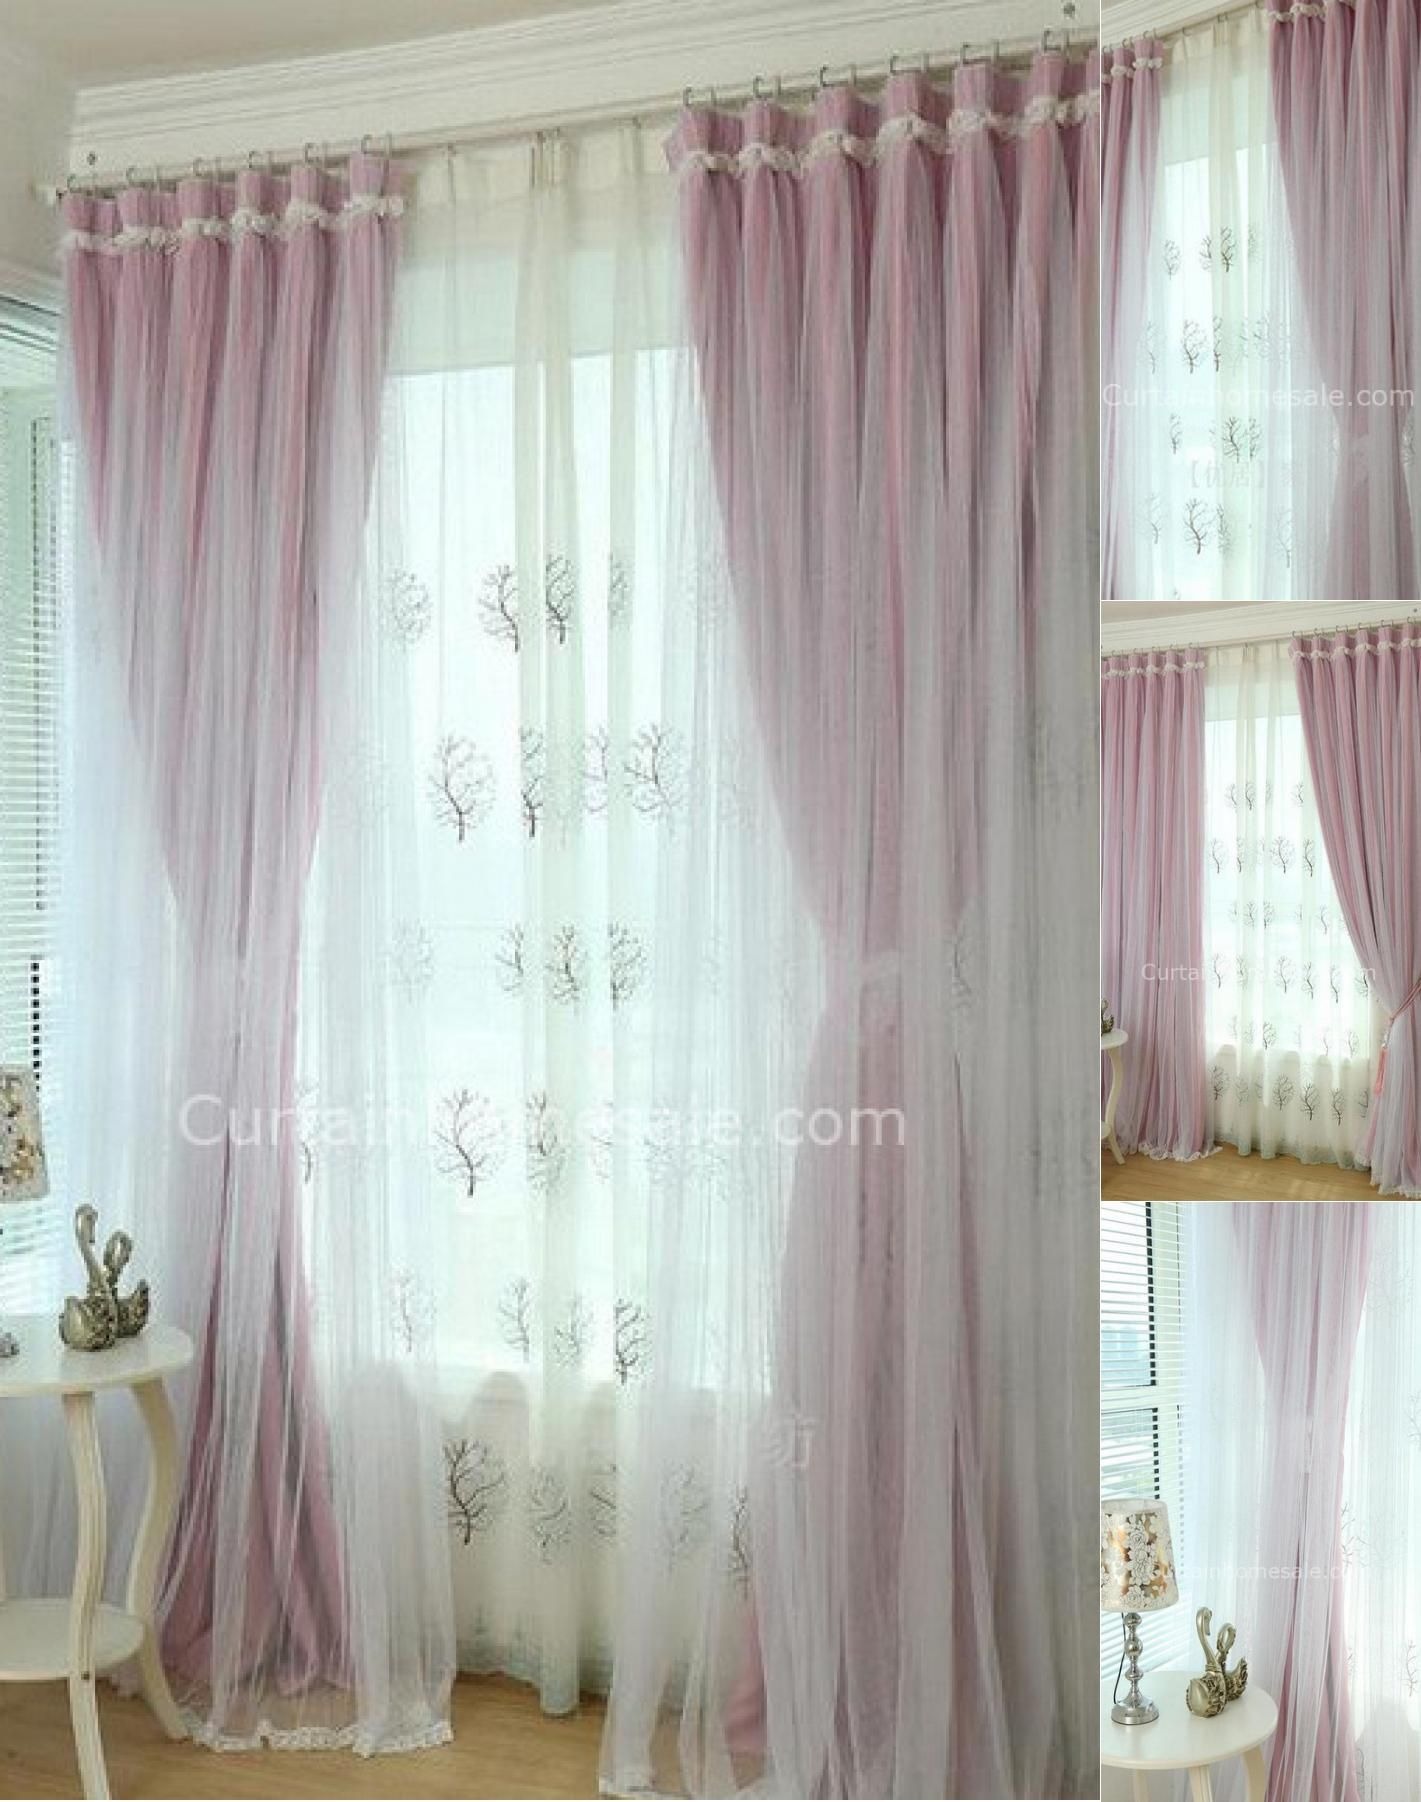 full remarkable dark curtains size purple inink and inspirations andurple curtain bedroom room of for girls in pink photo